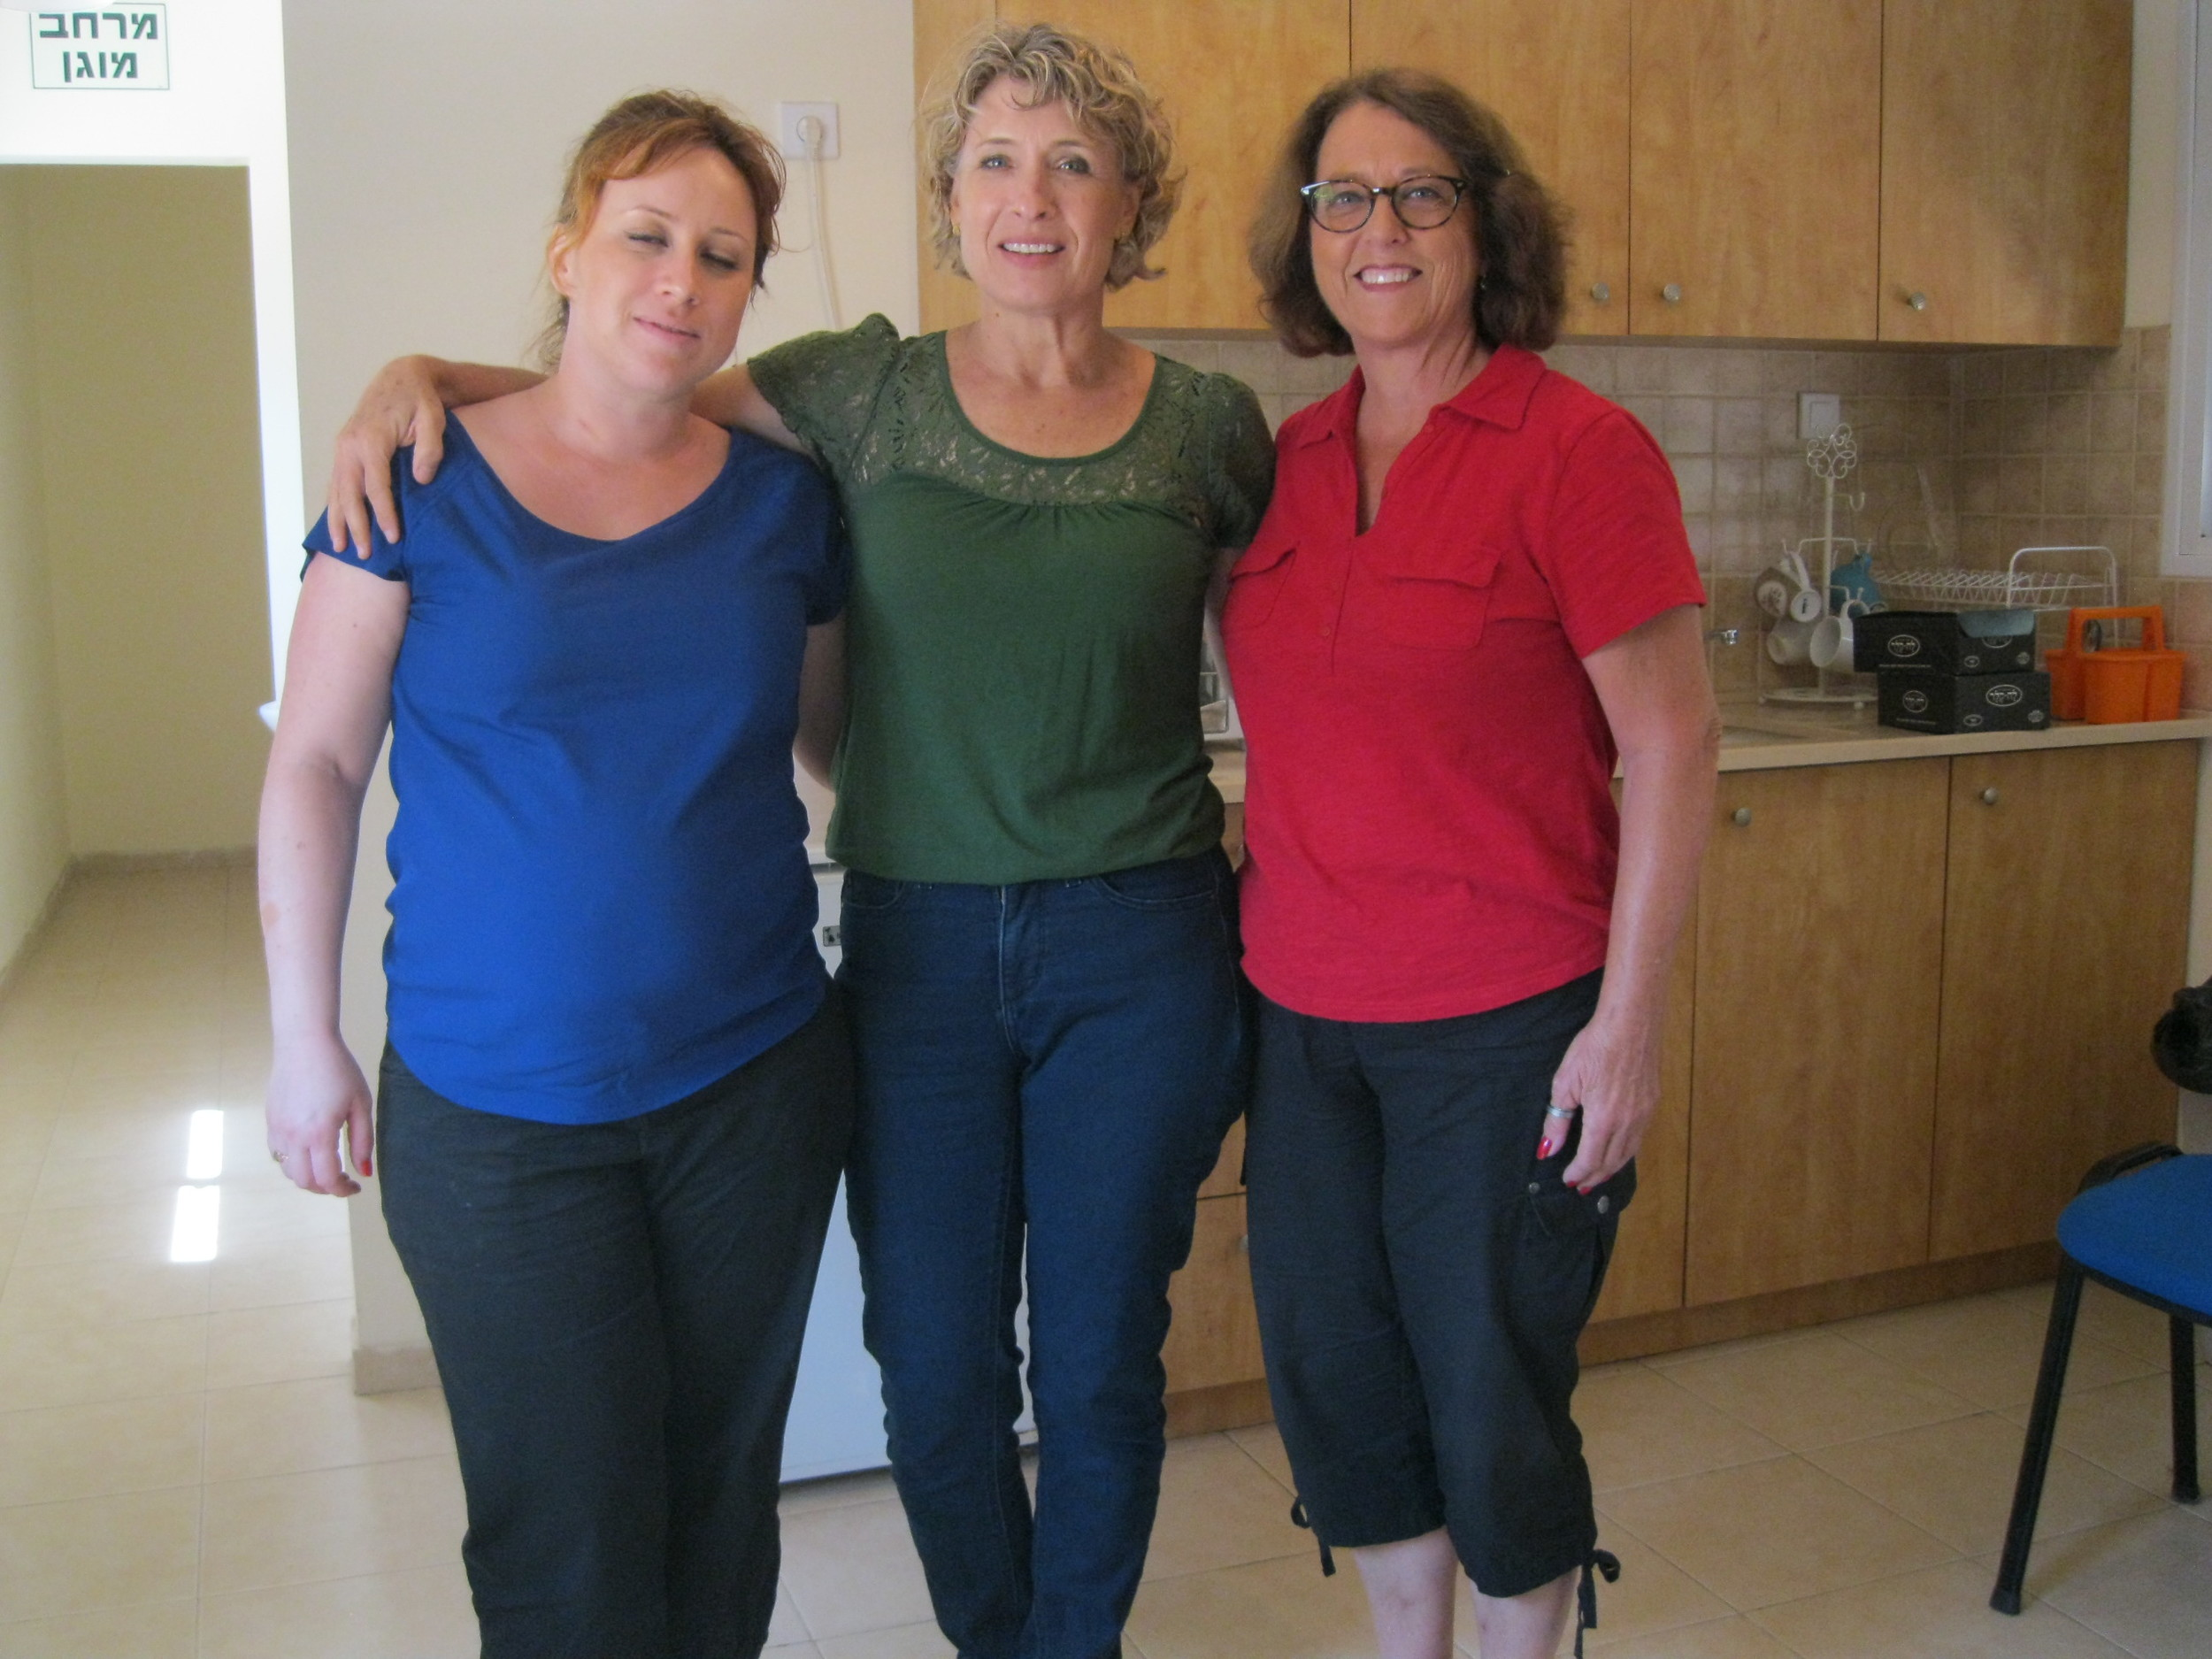 Deby is with the Director, Shirley, and her assistant at the Eden Center for girls just two miles from the Gaza border